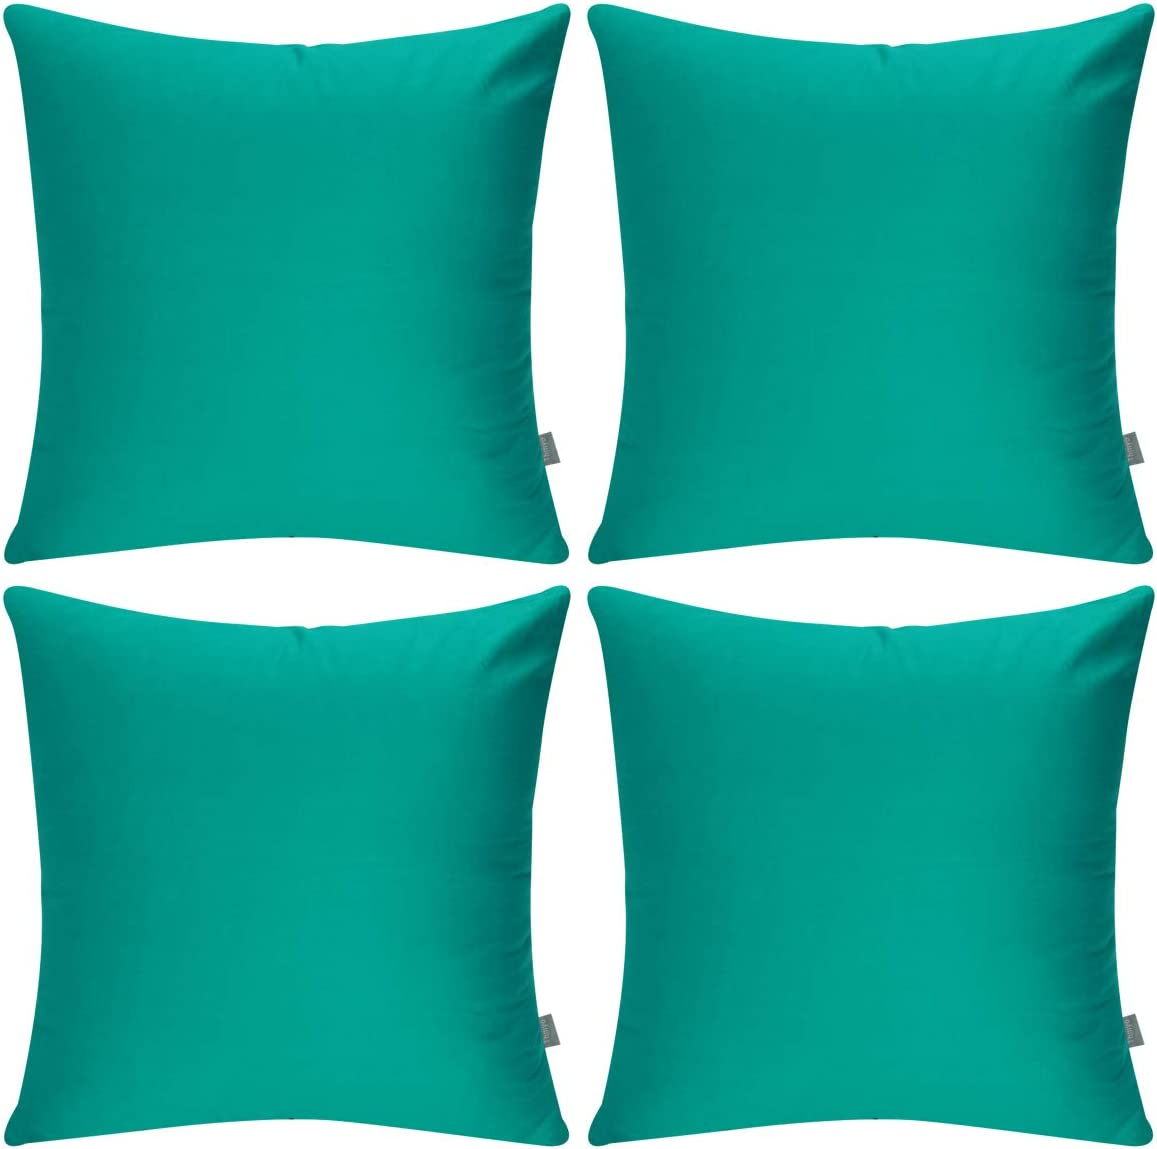 4-Pack 100% Cotton Comfortable Solid Decorative Throw Pillow Case Square Cushion Cover Pillowcase(Cover Only,No Insert) (18x18 inch/ 45x45cm,Lake Blue)